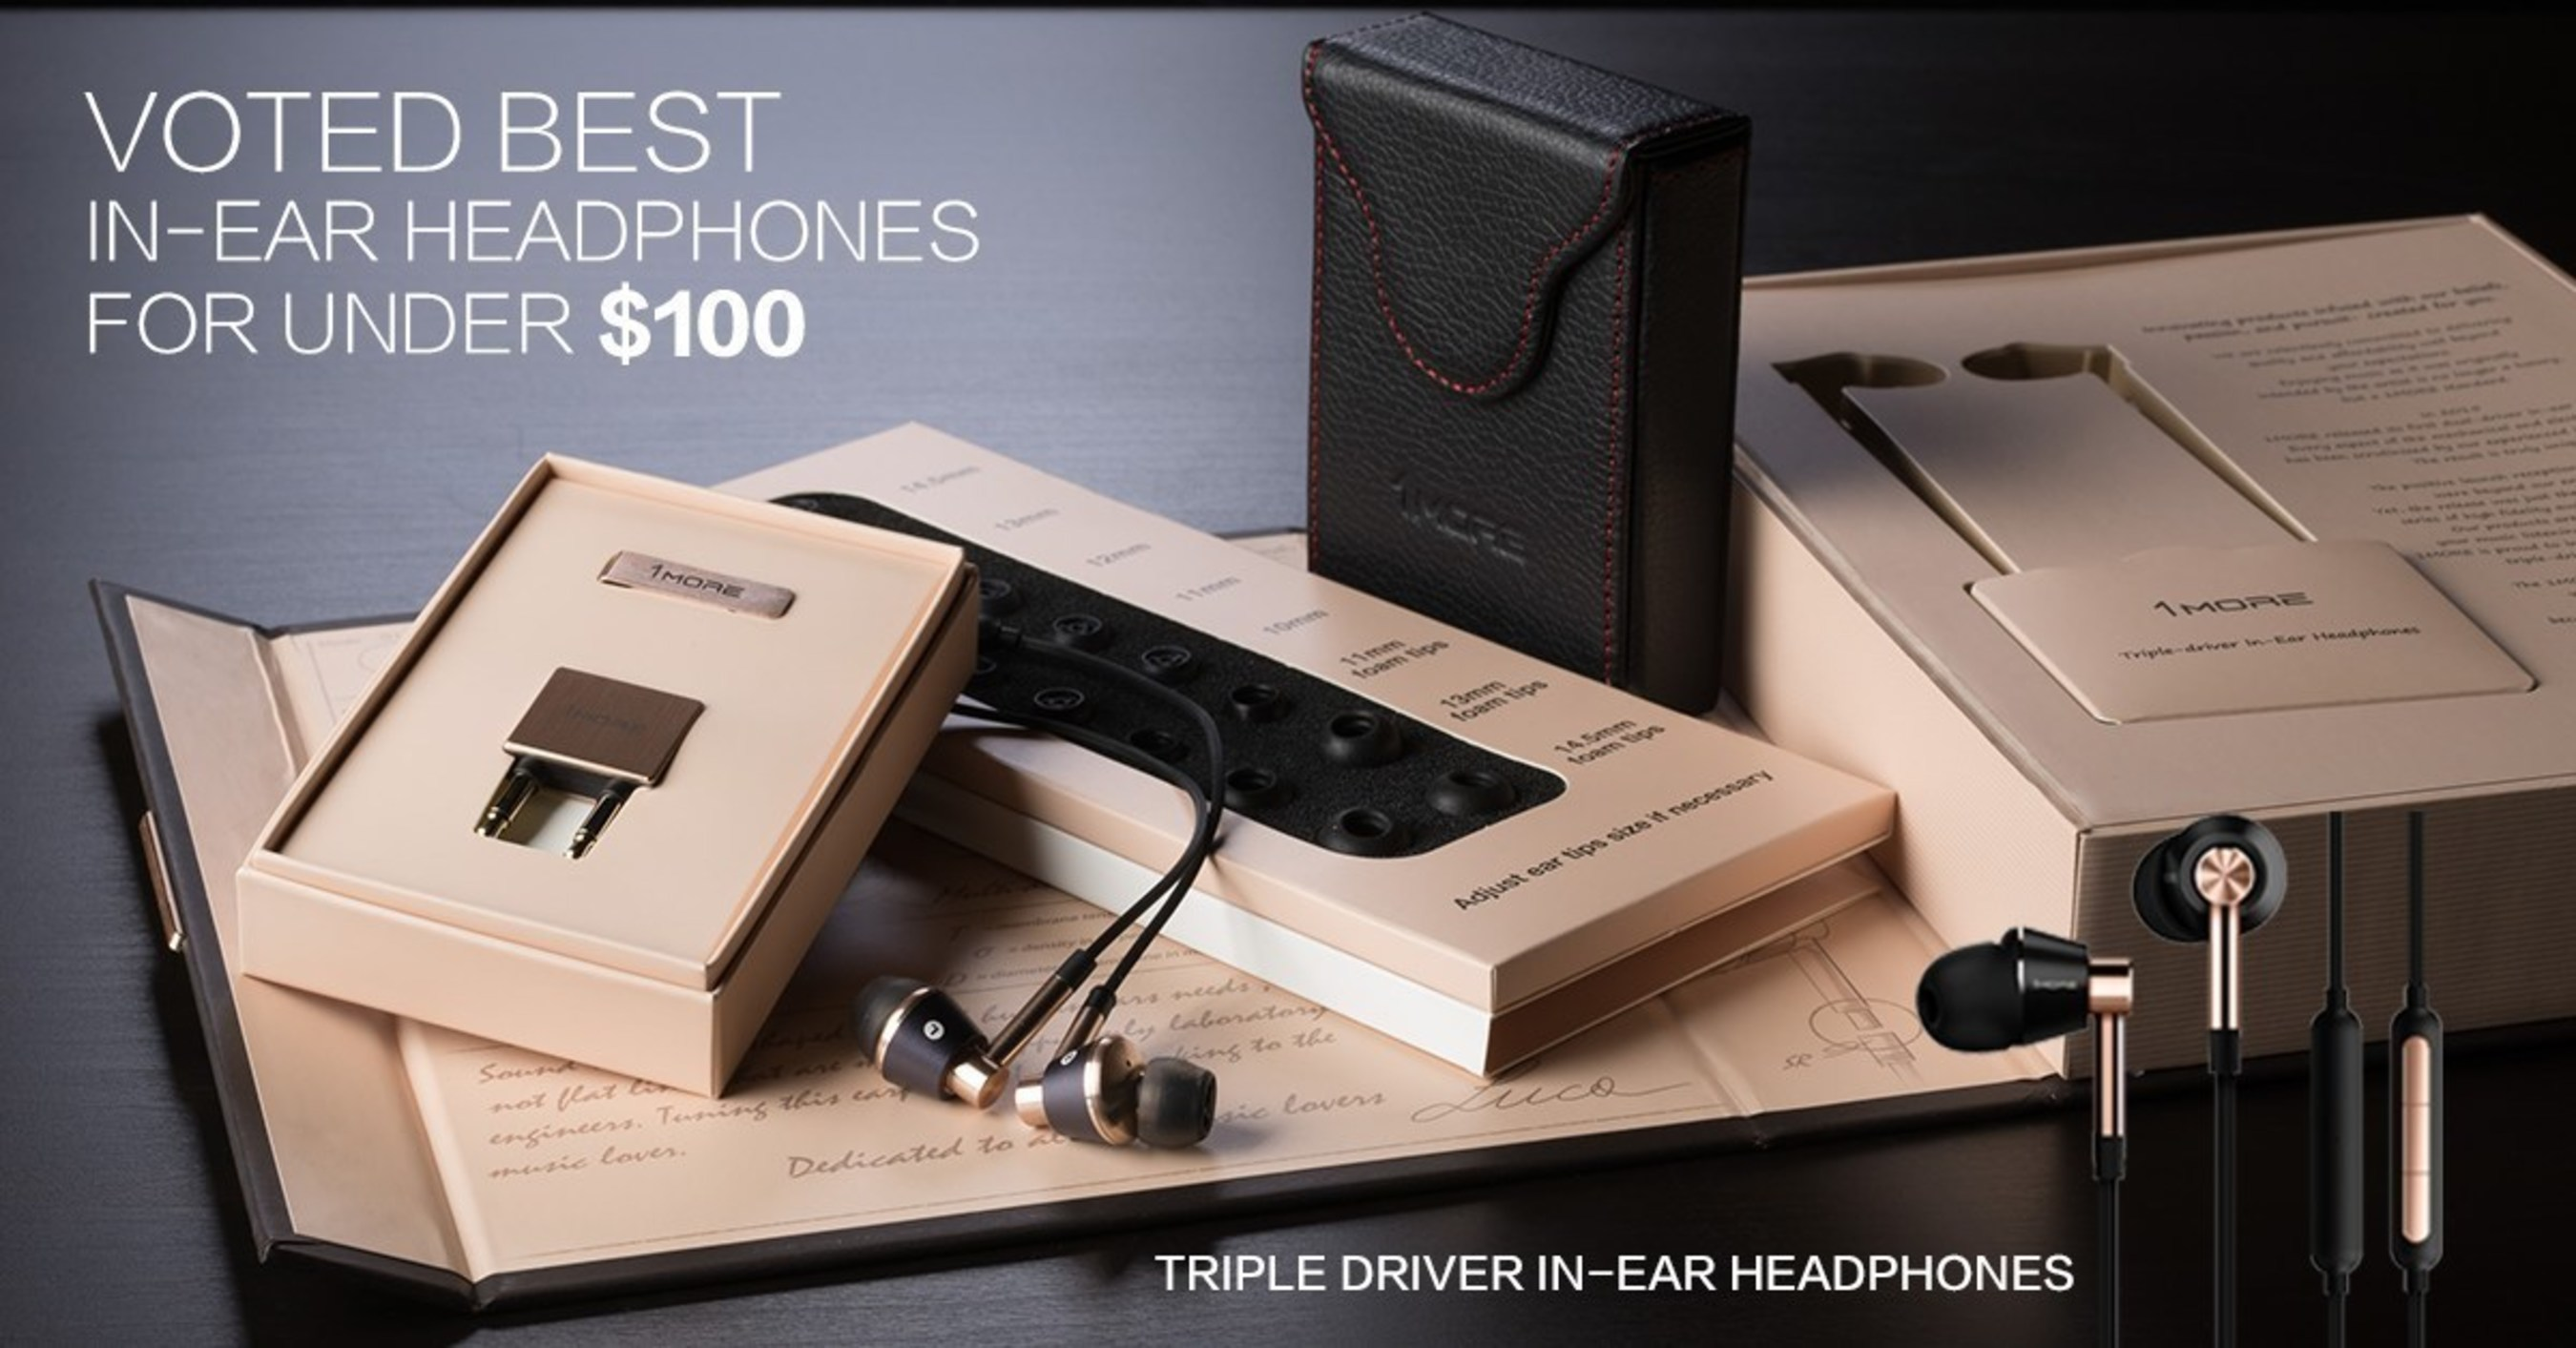 1MORE Headphones Quickly Making Waves With Industry Experts And Consumers